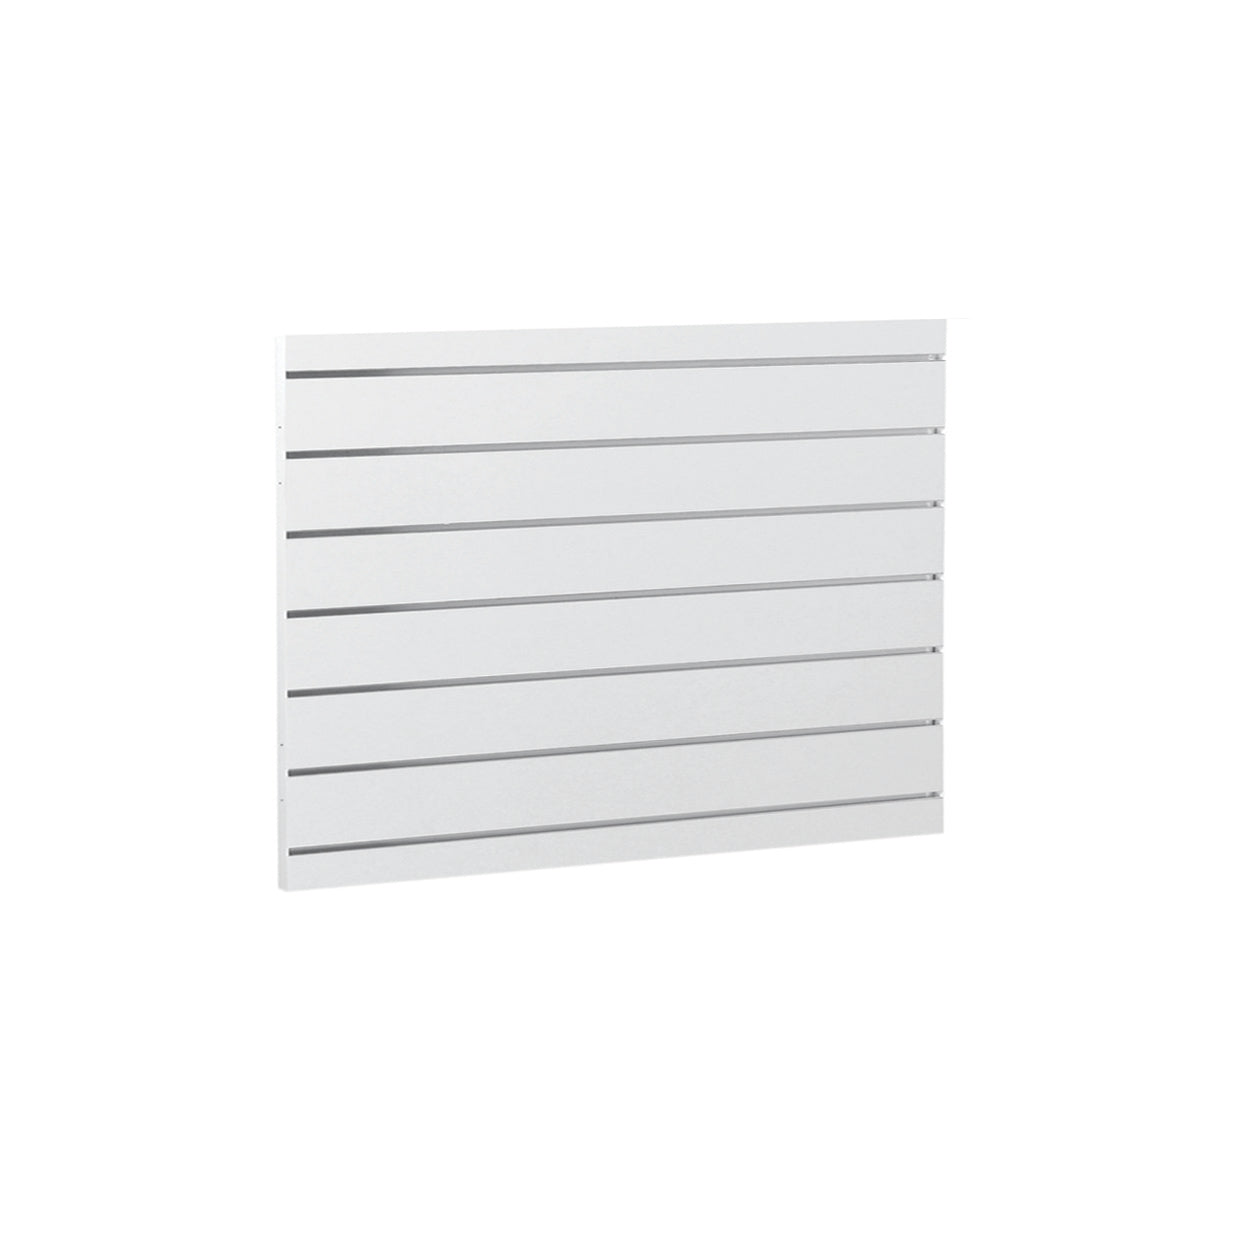 MAXe slatwall panel 560 H - 600 mm bay  590 W x 18 mm Thick E8006BK